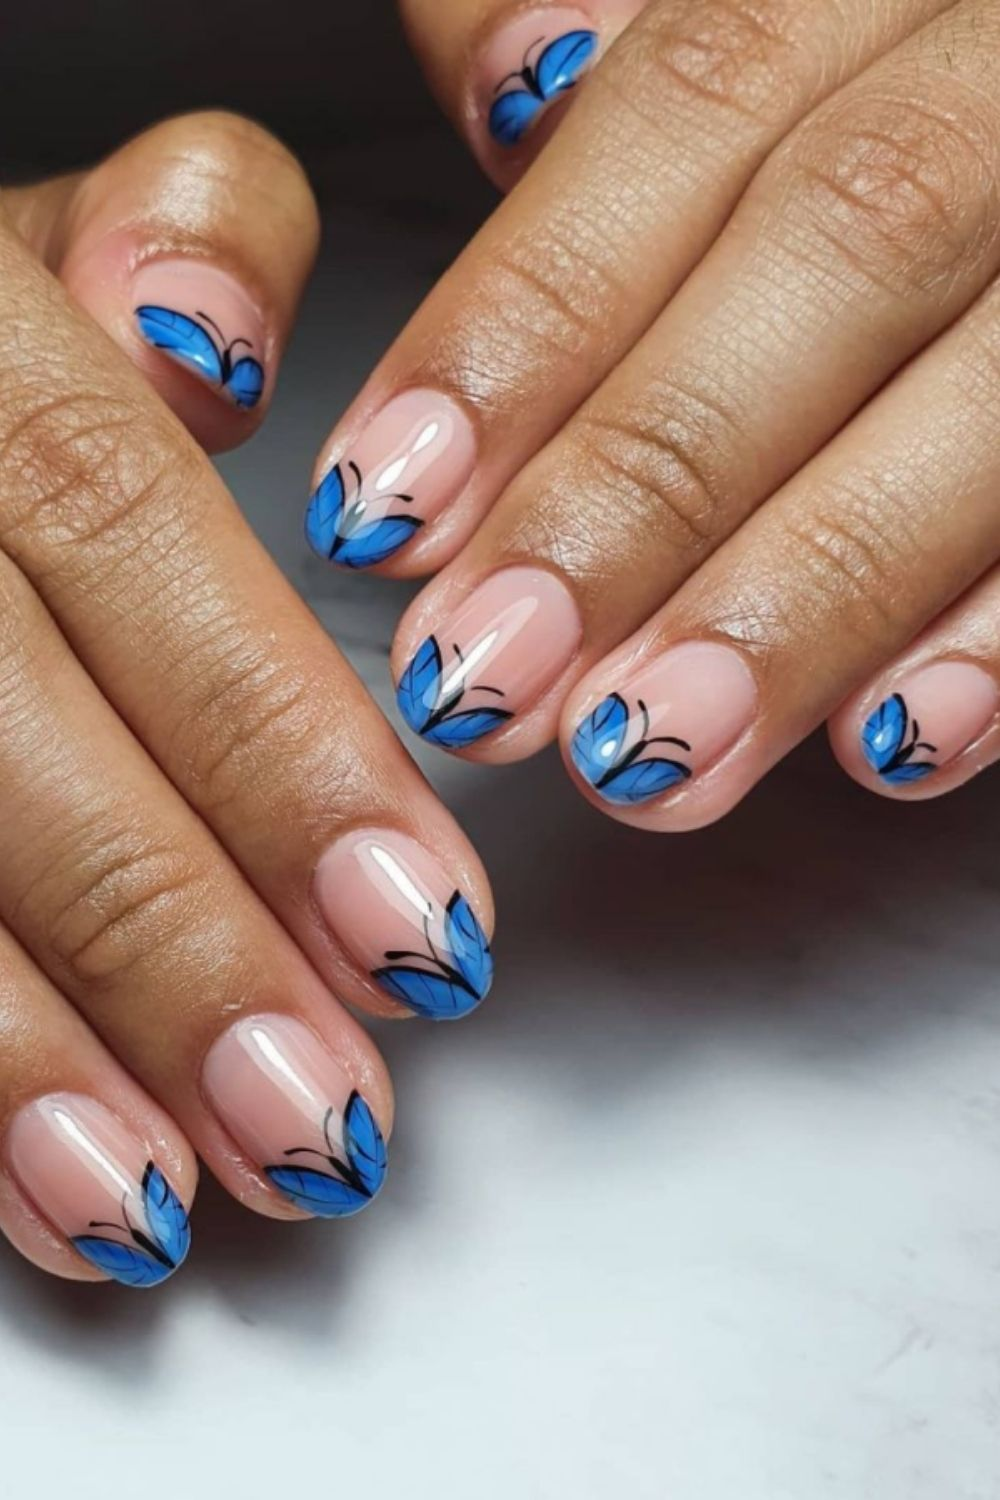 Butterfly tip nails